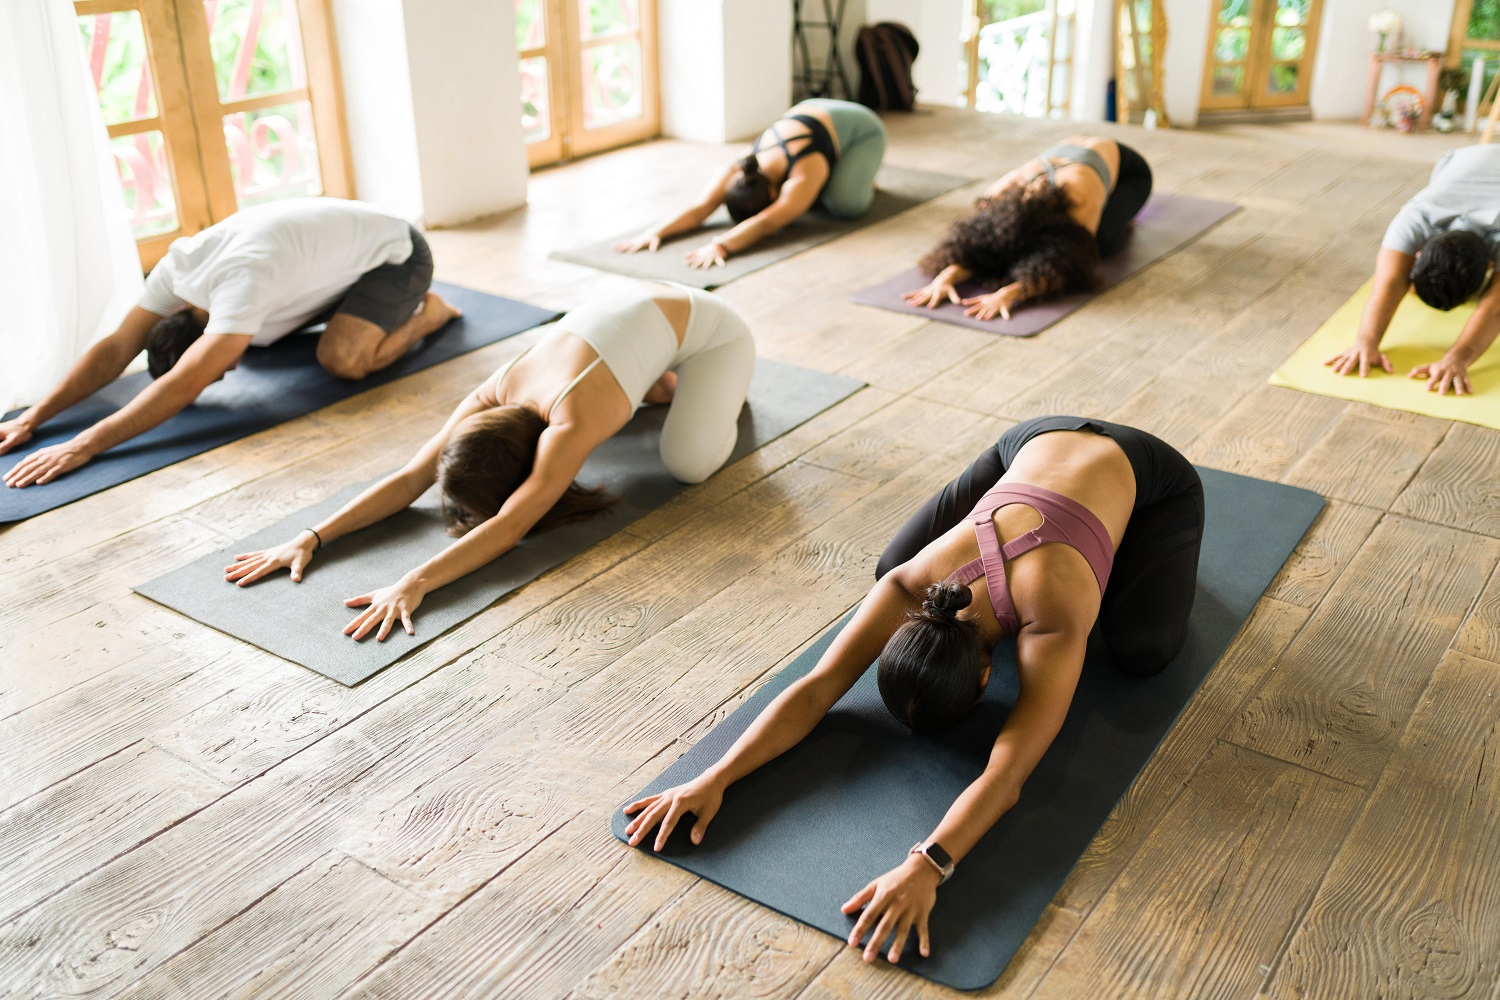 Join yoga classes if you can